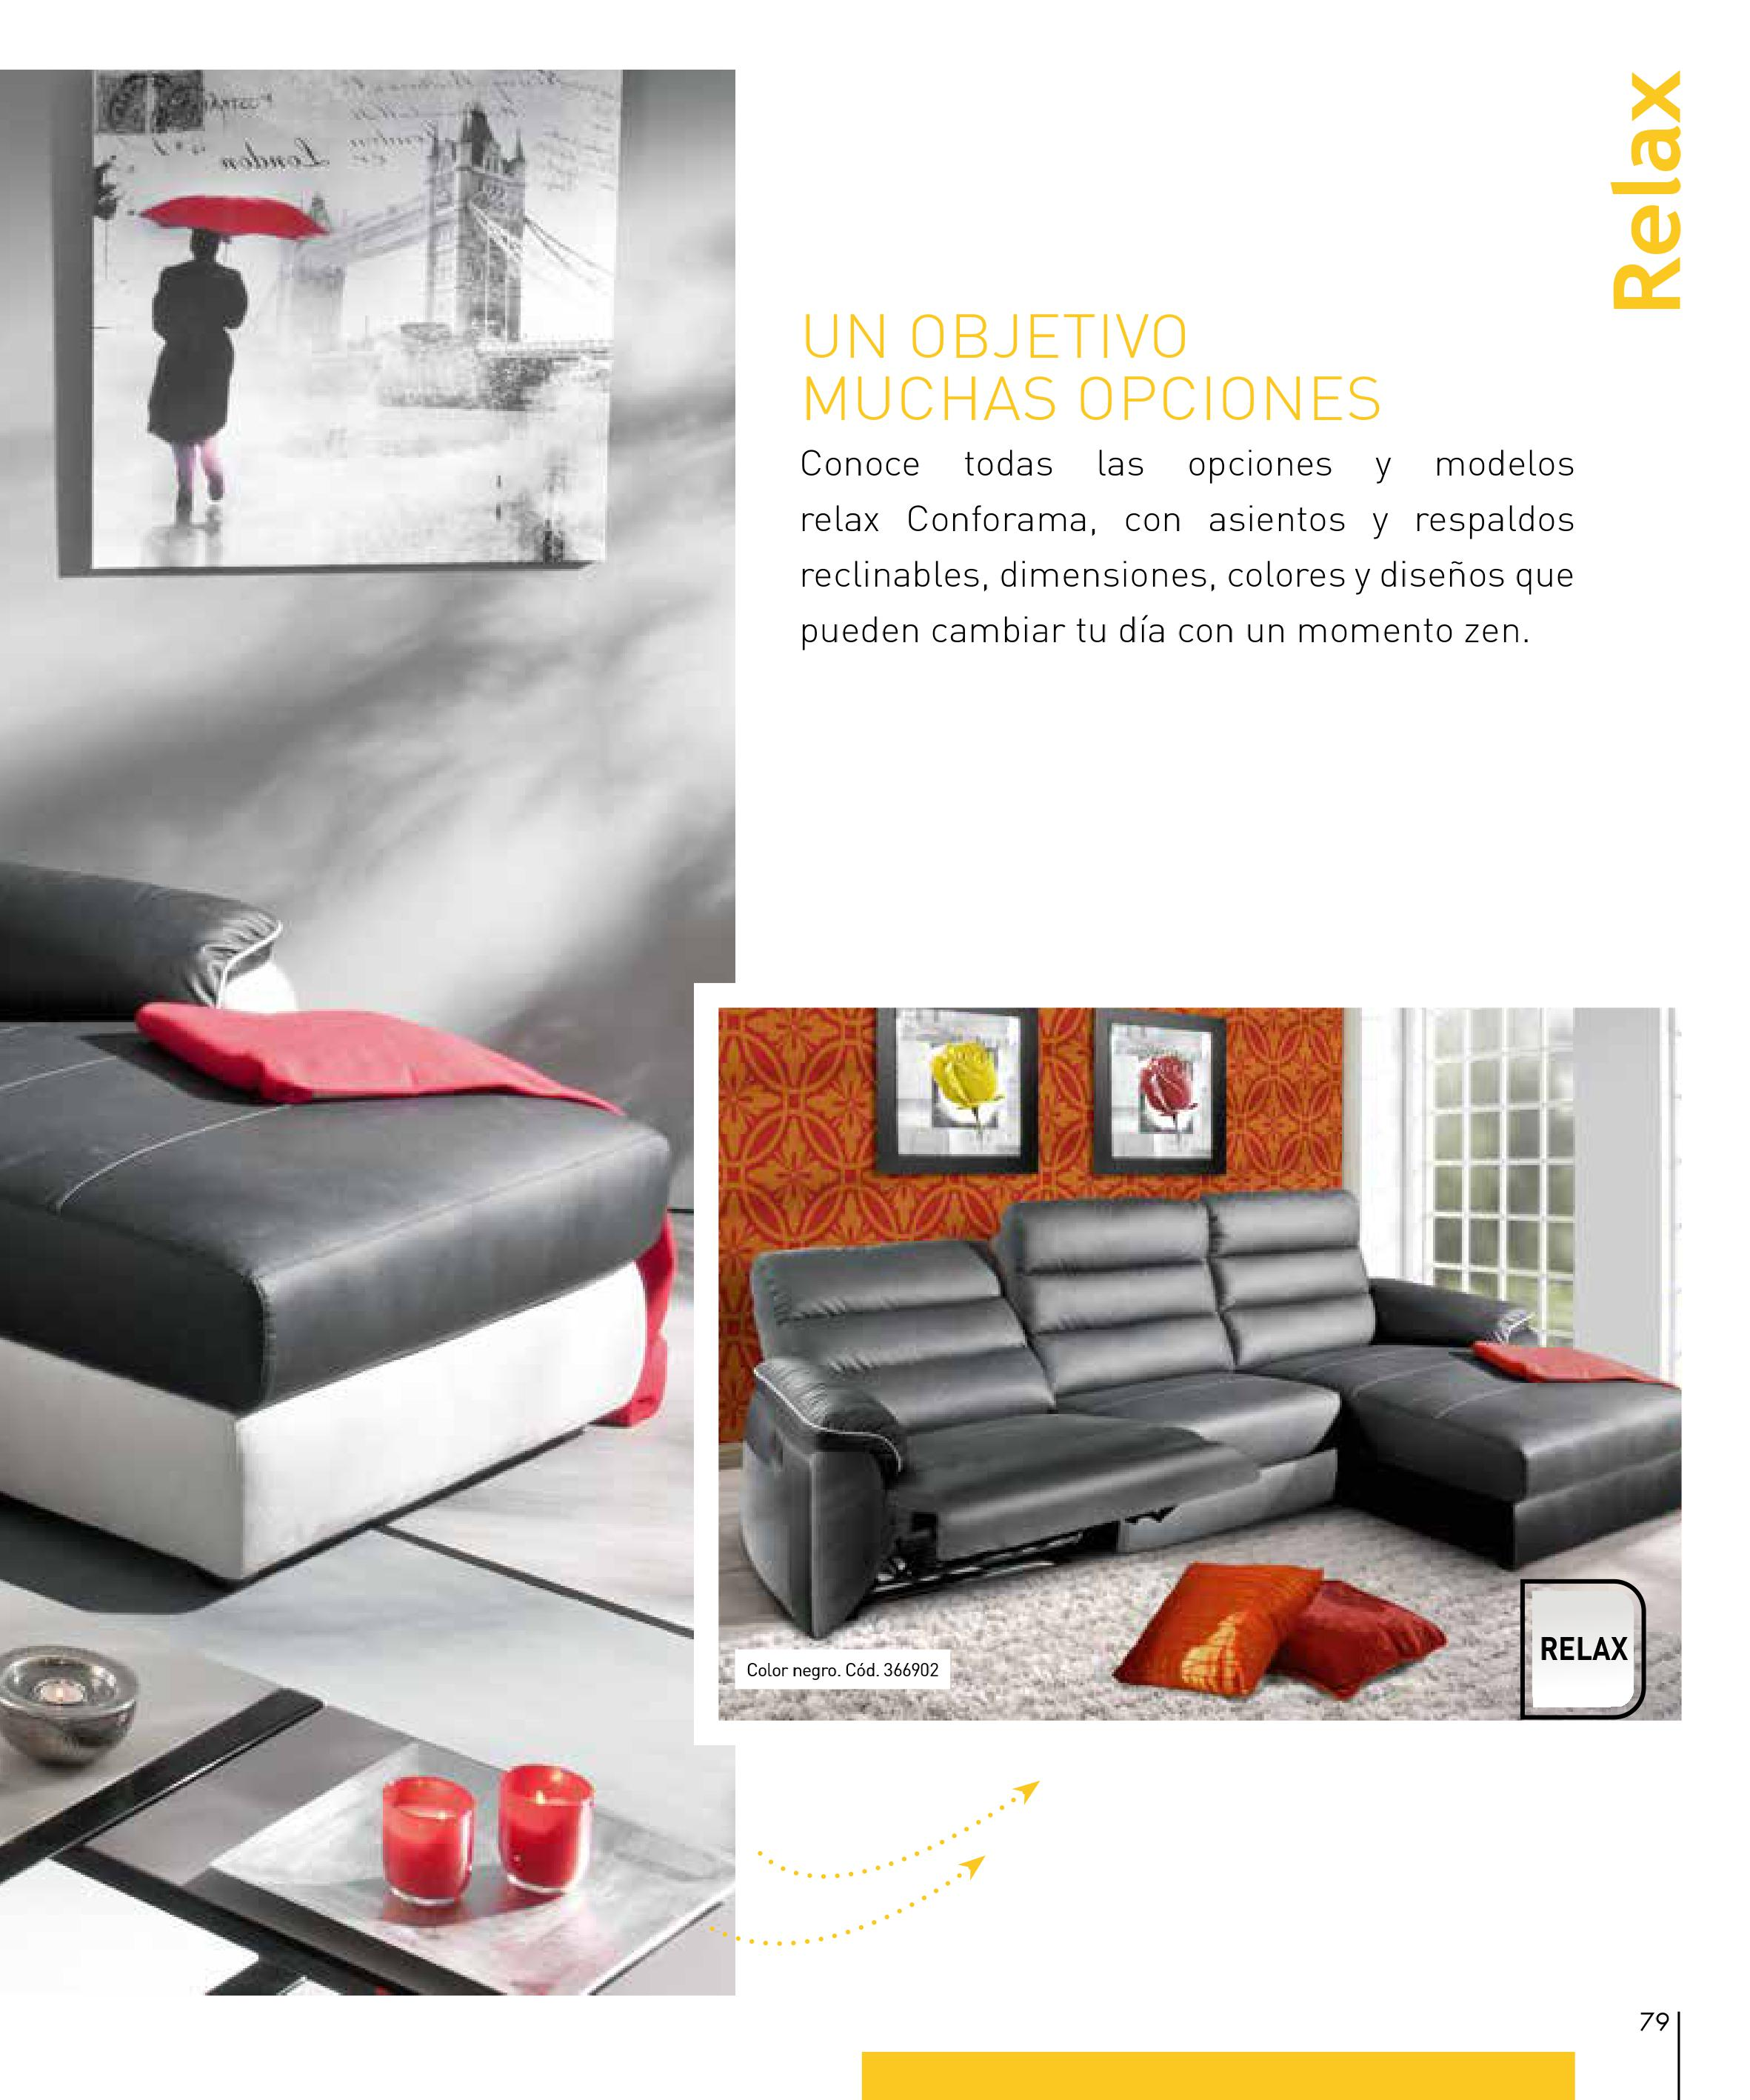 Sofas conforama 201579 for Sofas conforama catalogo